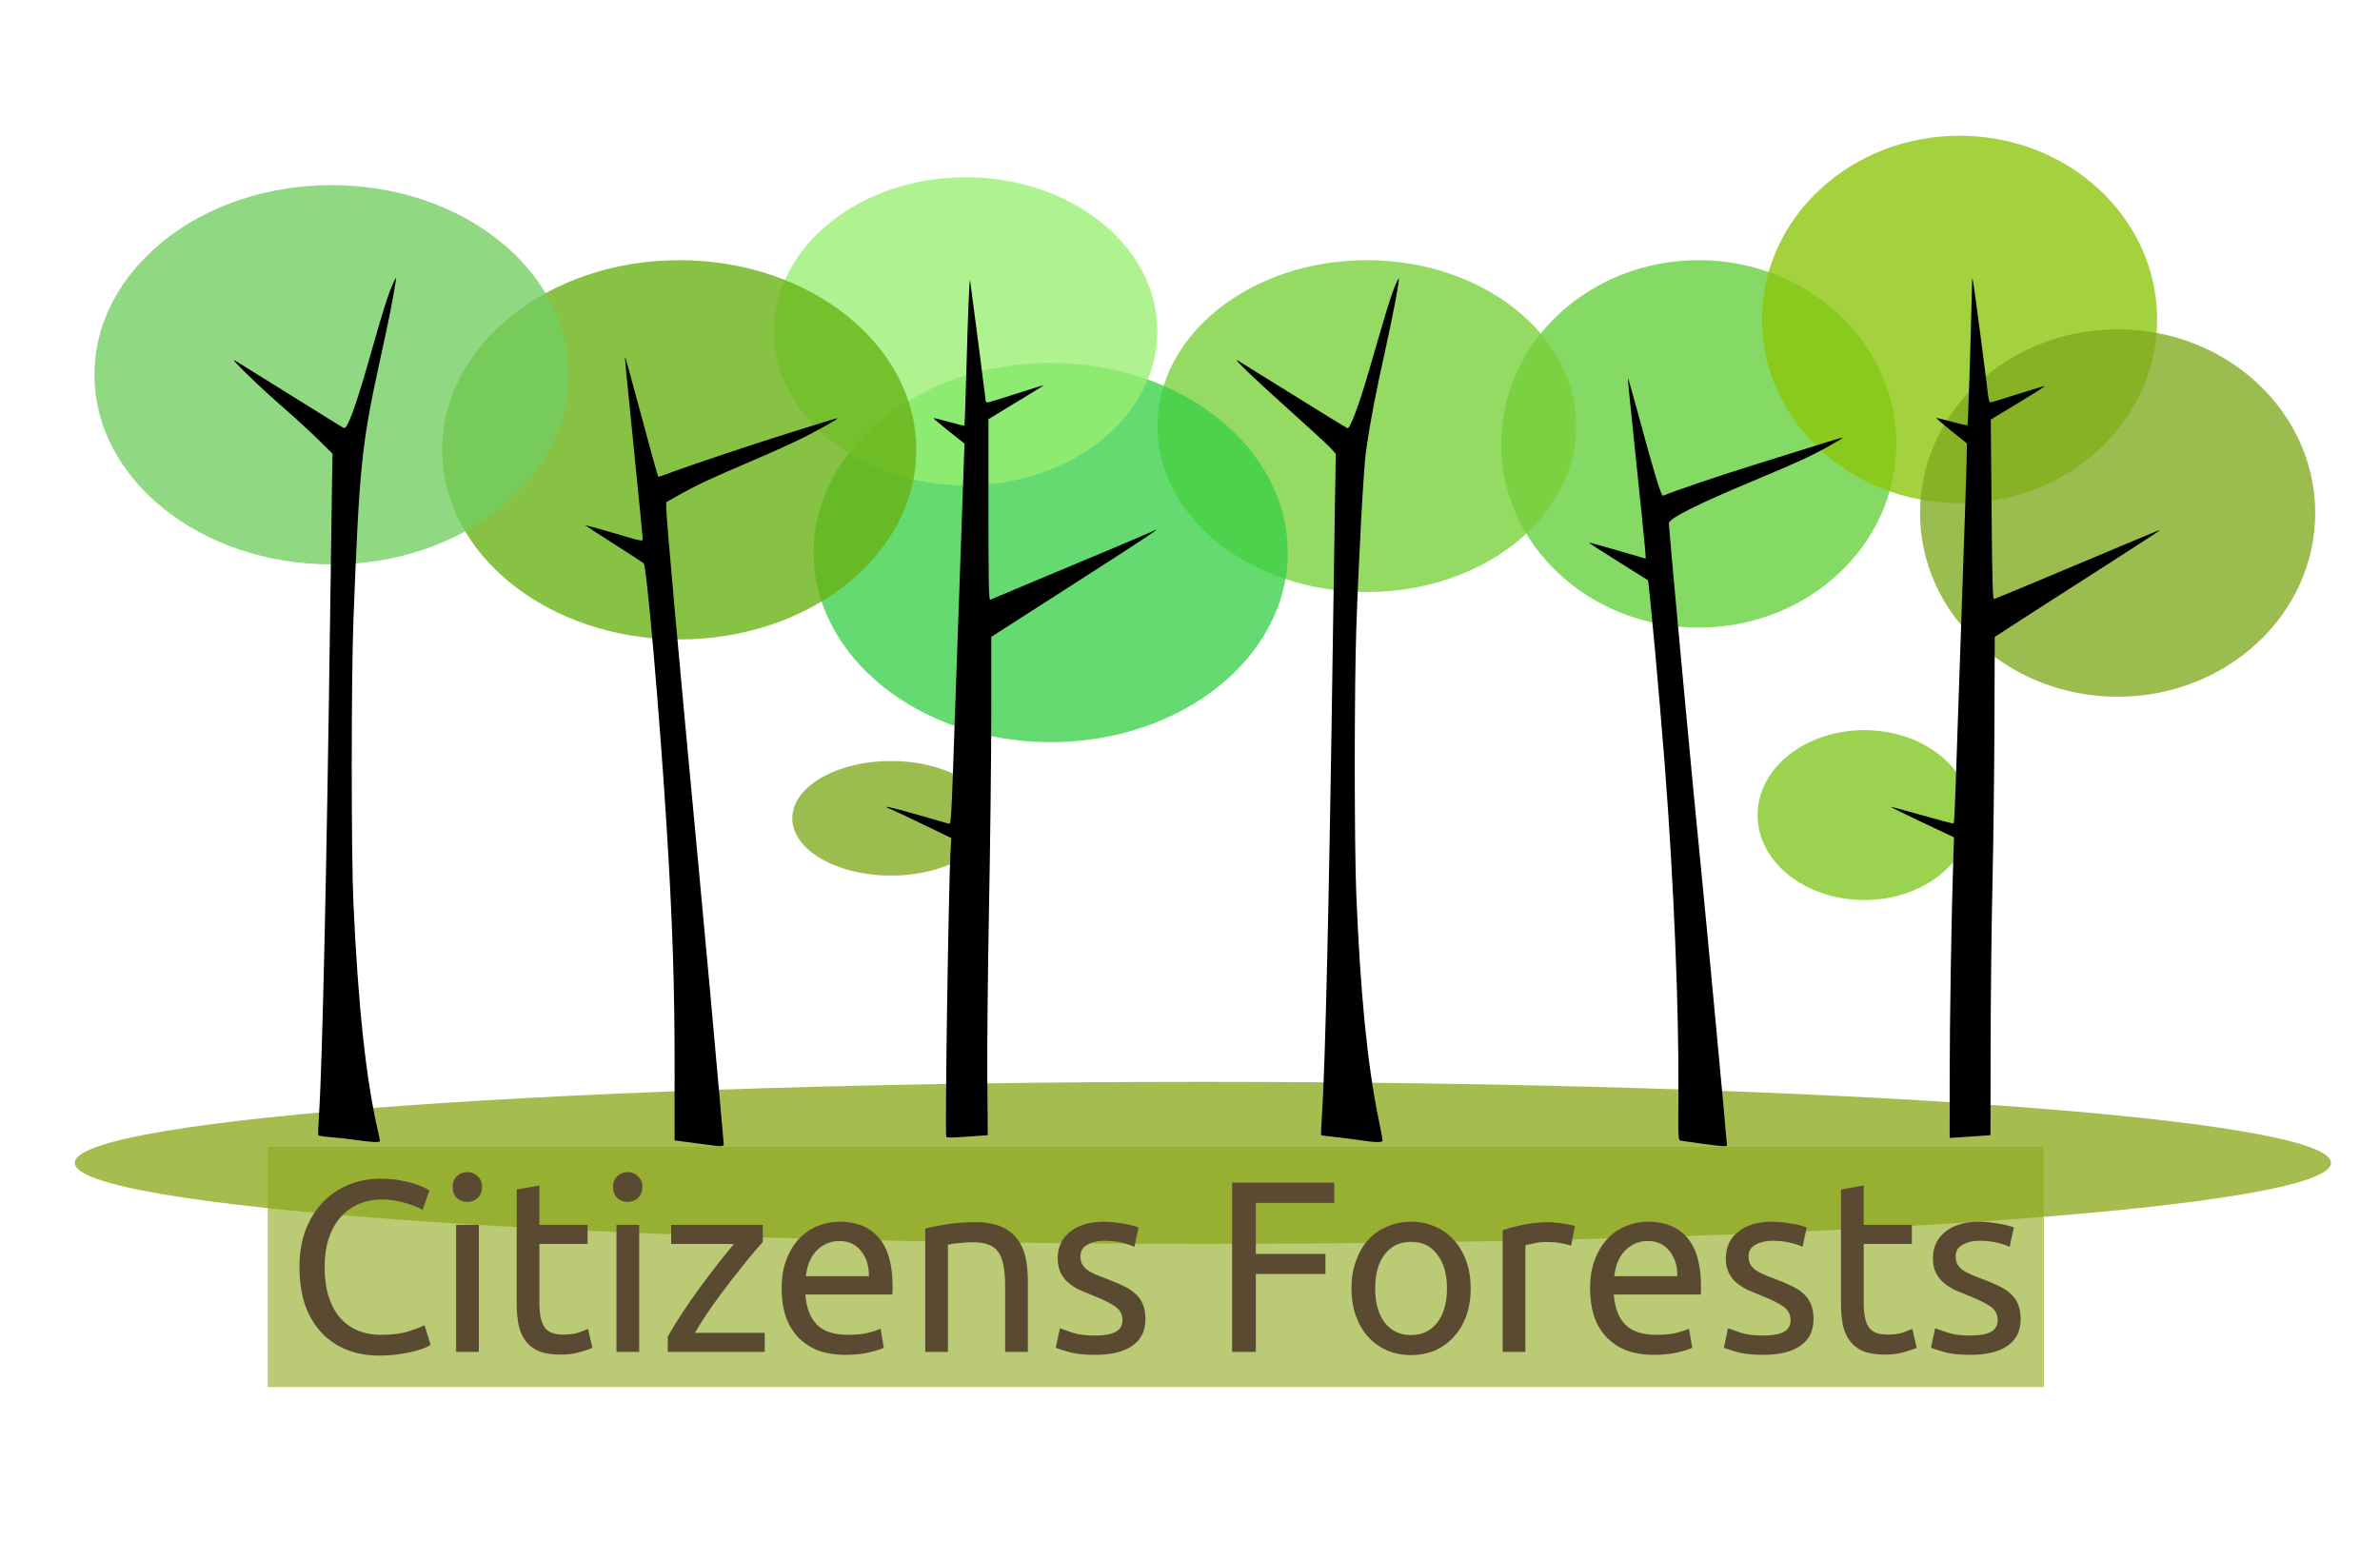 citizens-forests-logo